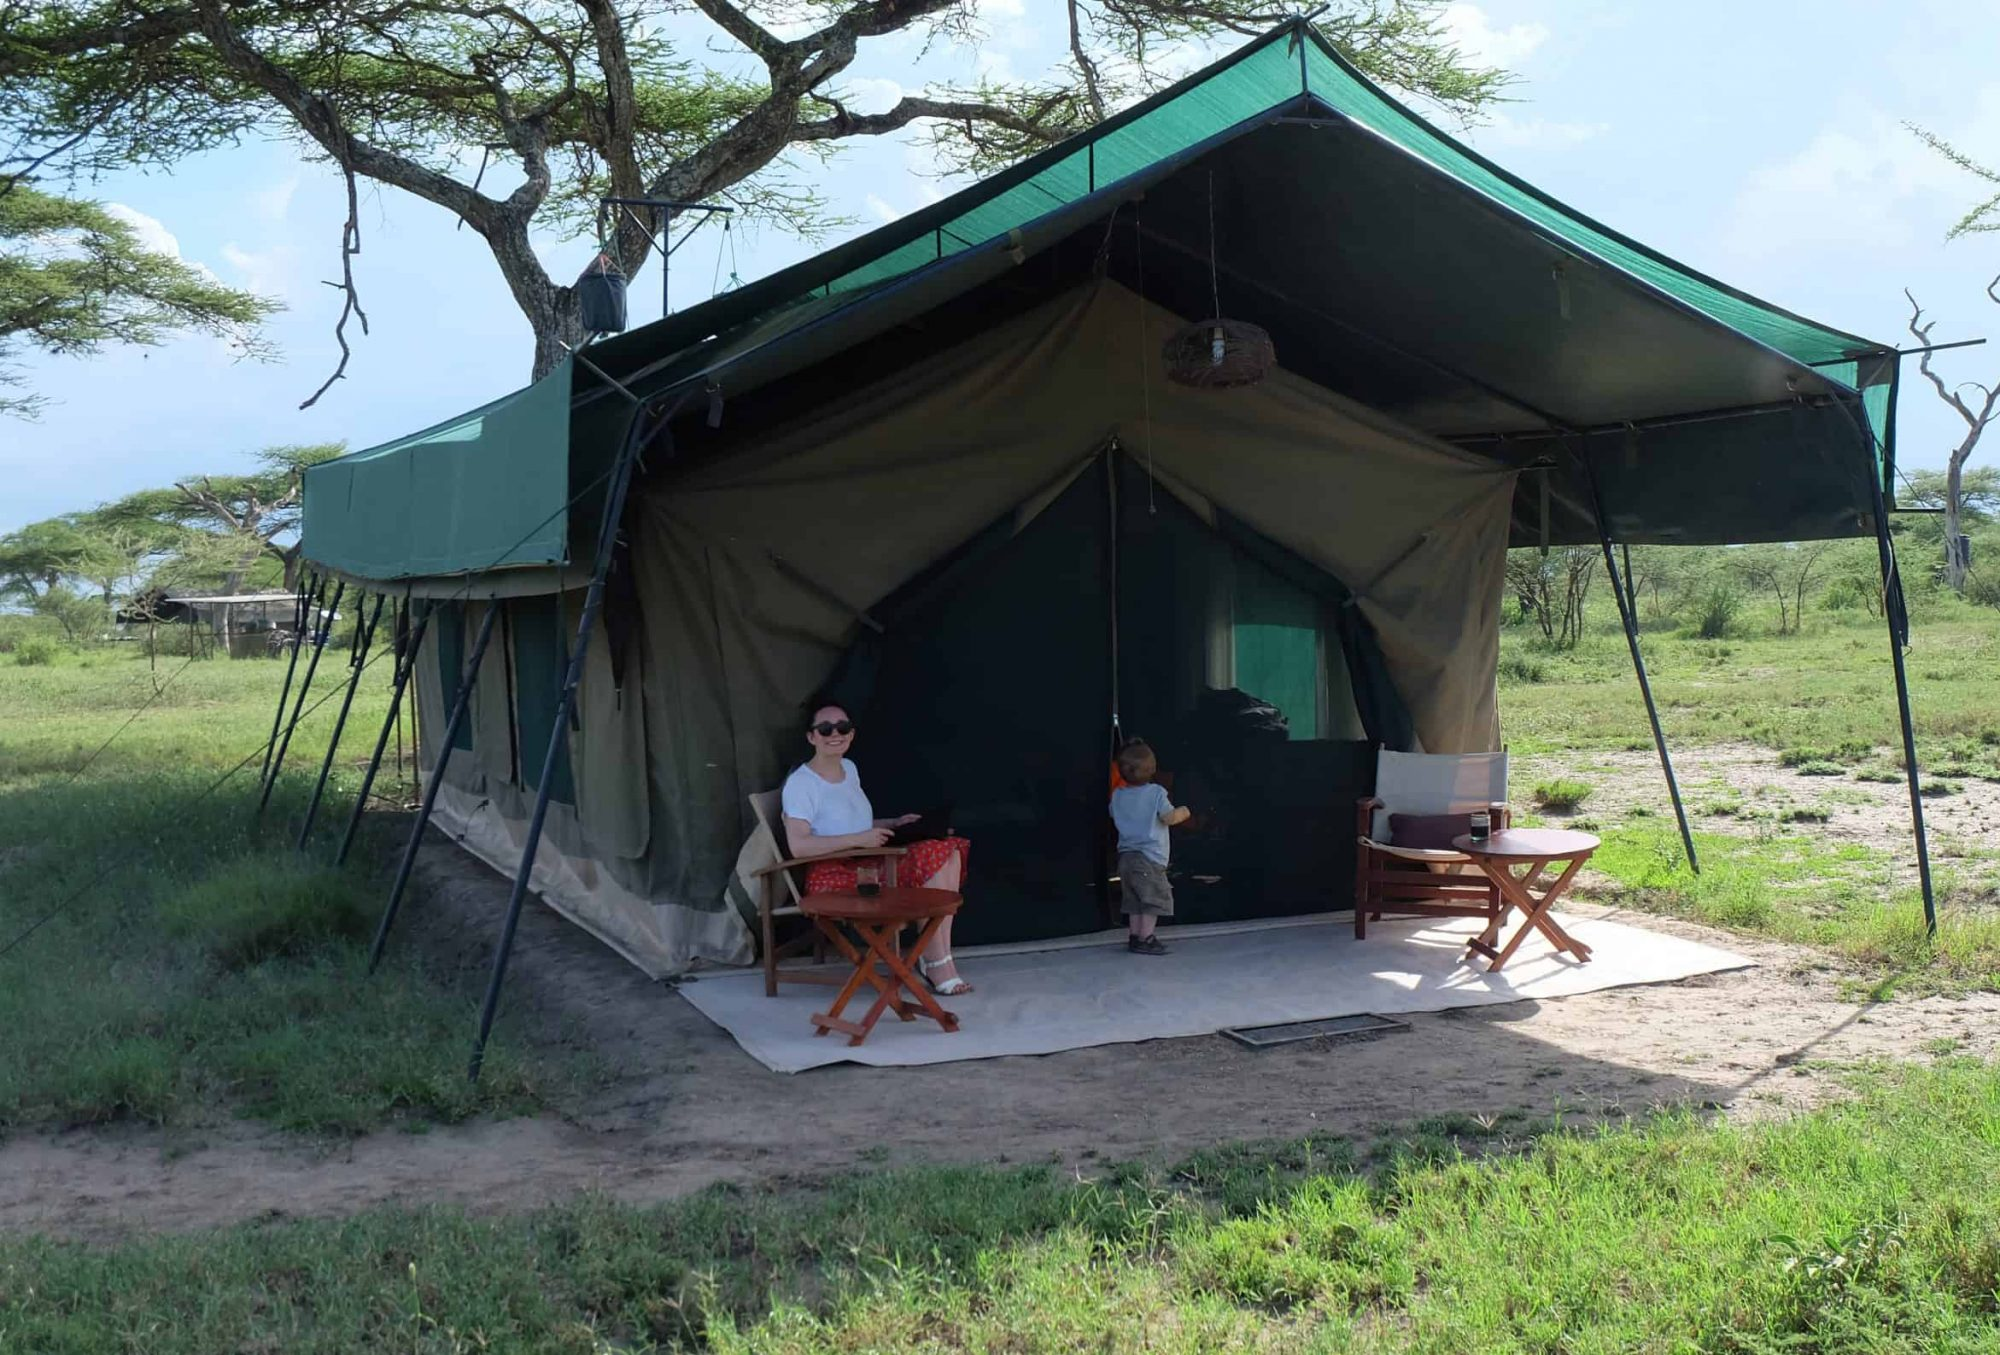 One of the mobile camps, this one Chaka Camp in the Serengeti